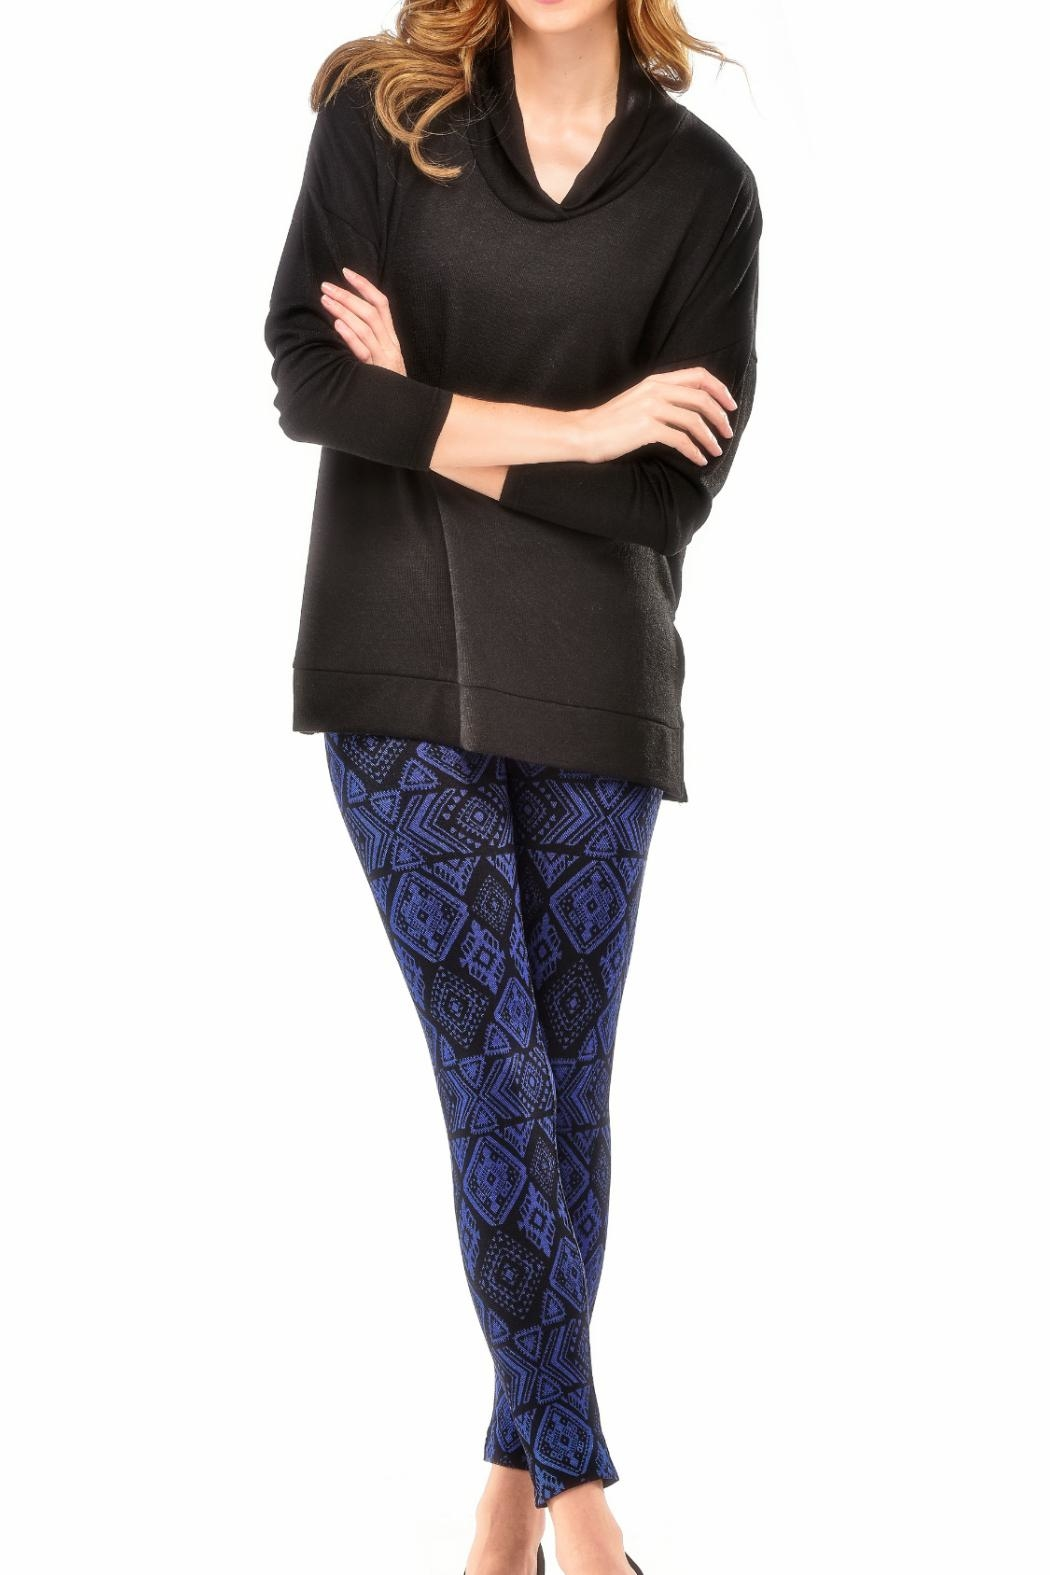 Charlie Paige Jersey Lined Leggings - Front Full Image